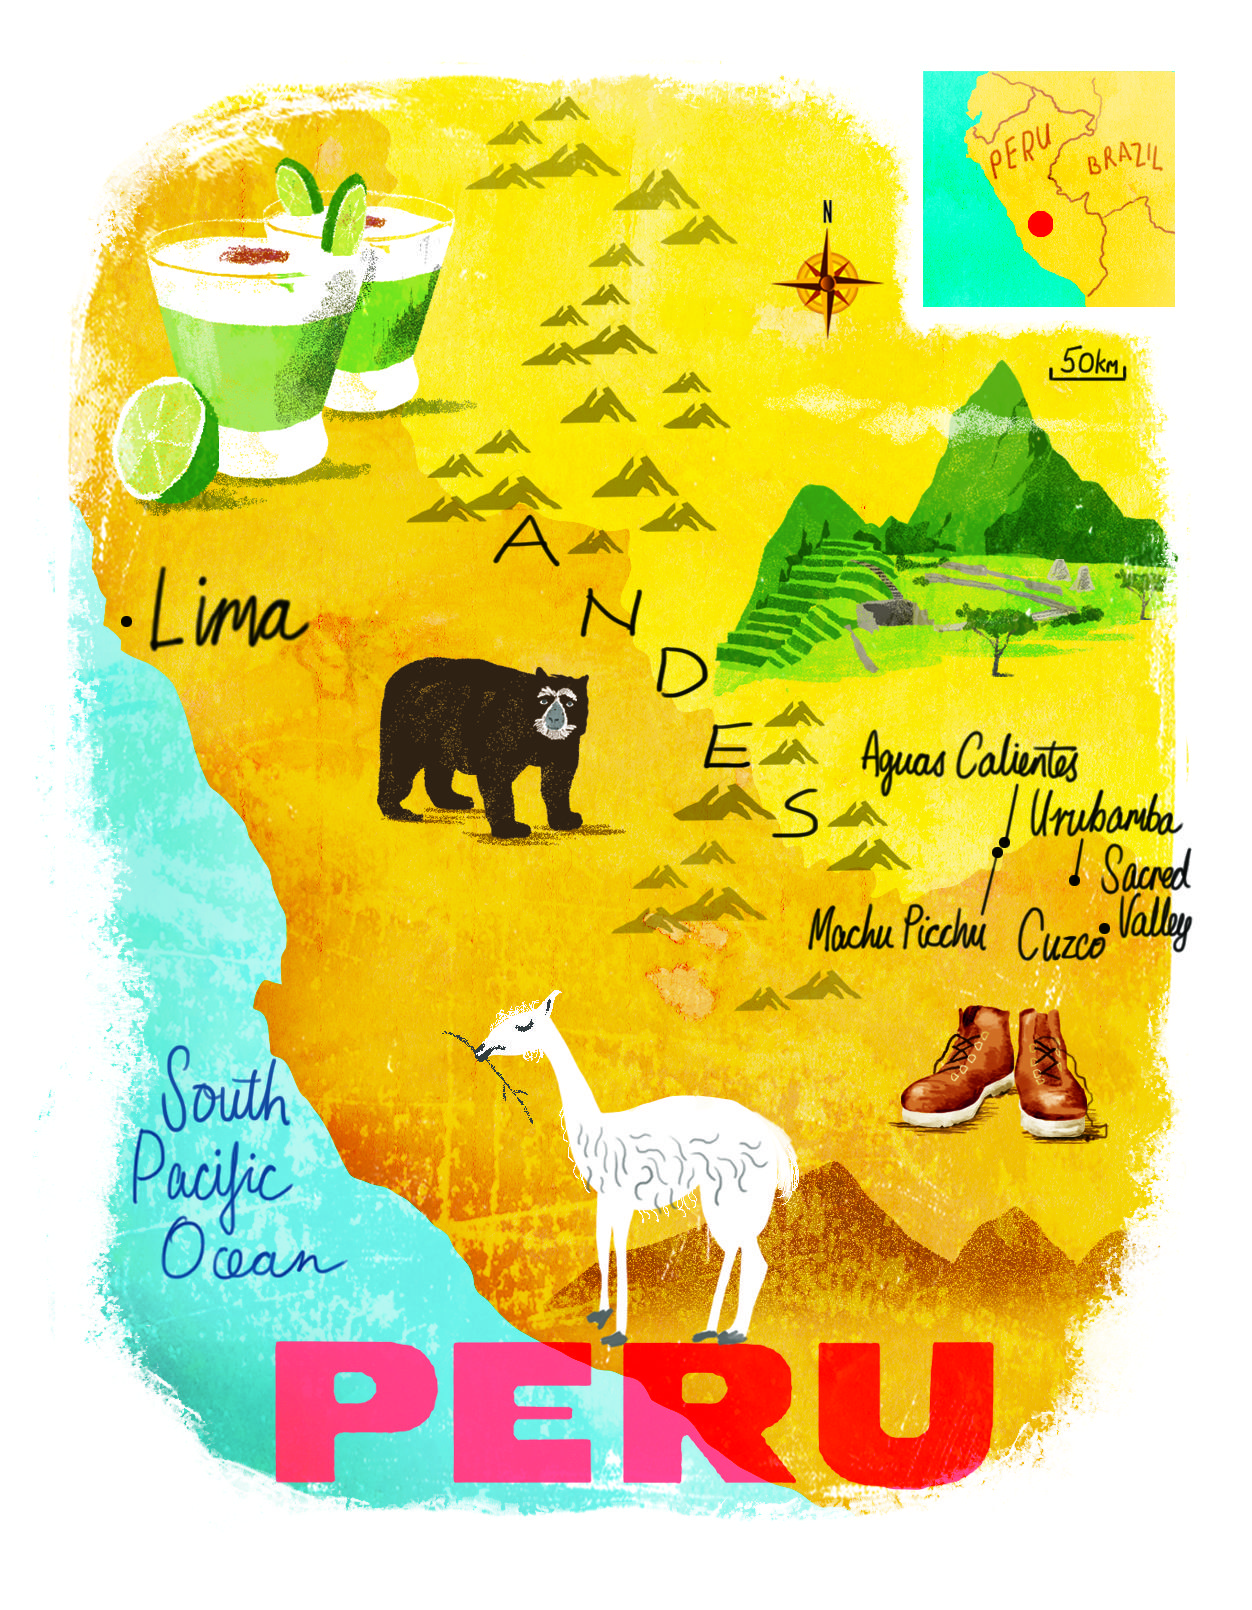 Peru Map By Scott Jessop July 2016 Issue Illustrated Map Peru Map Vintage Travel Posters